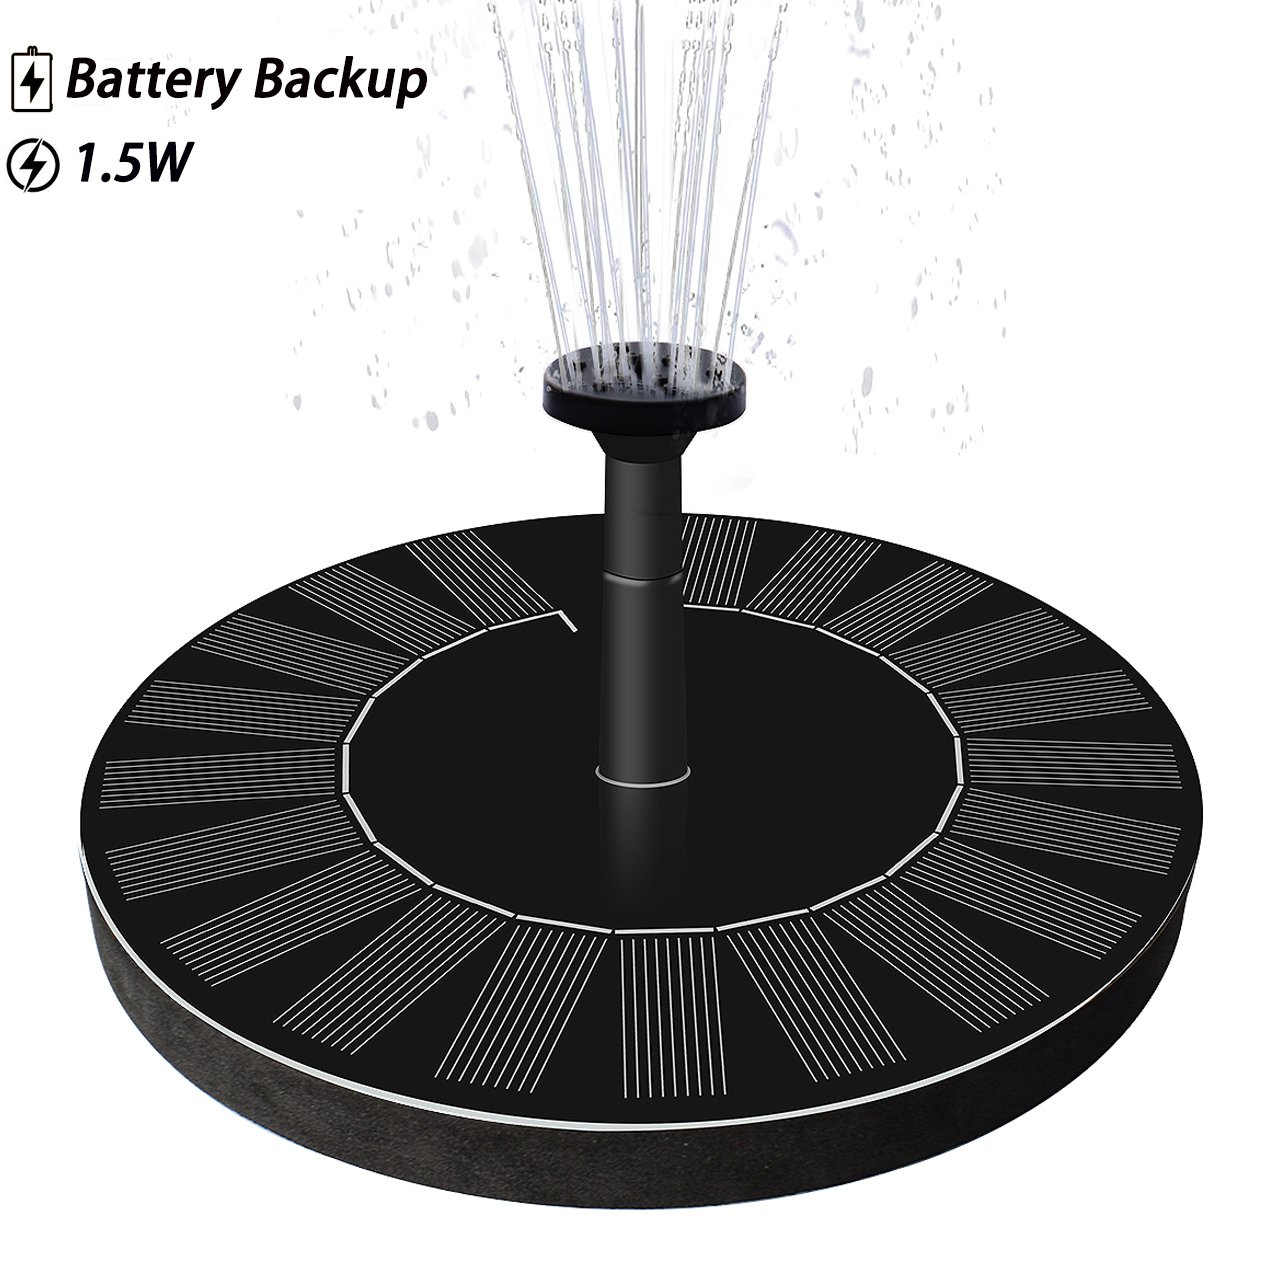 LATITOP Upgraded 1.5W Solar Fountain Water Pump Battery Backup, Free Standing, Submersible Bird Bath, Garden, Back Yard Small Pond.